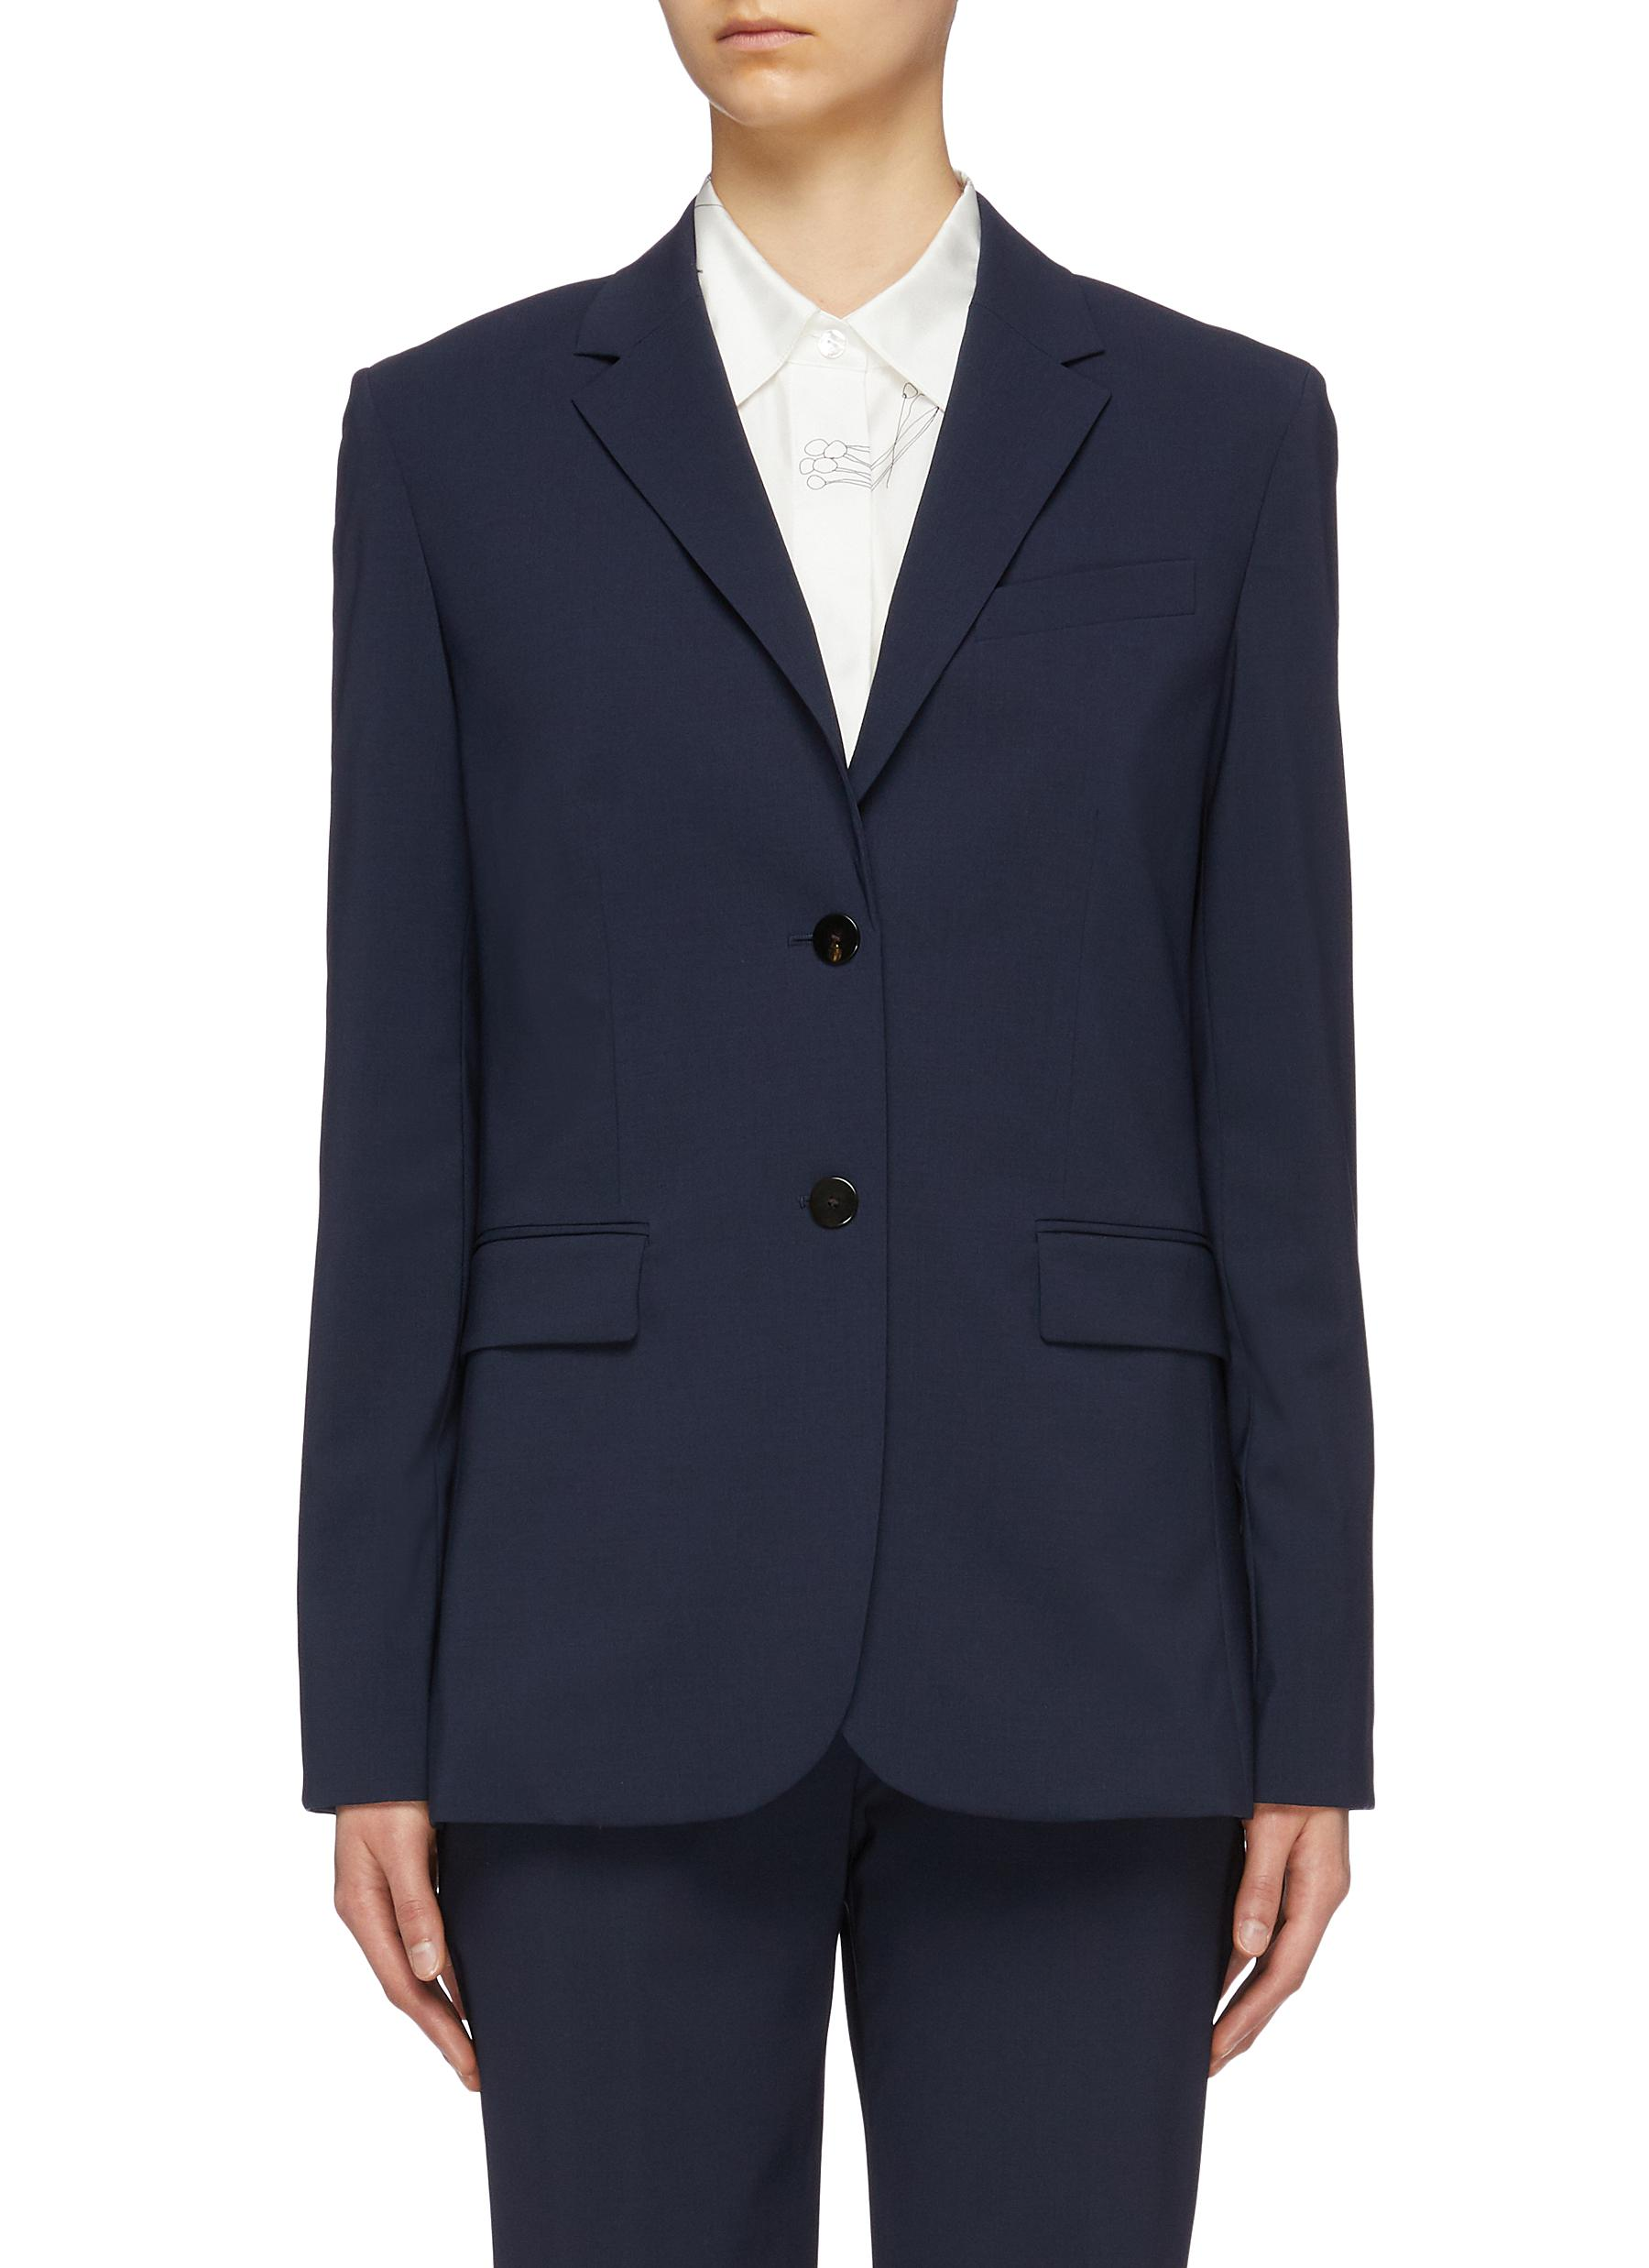 Classic notched lapel virgin wool blazer by Theory